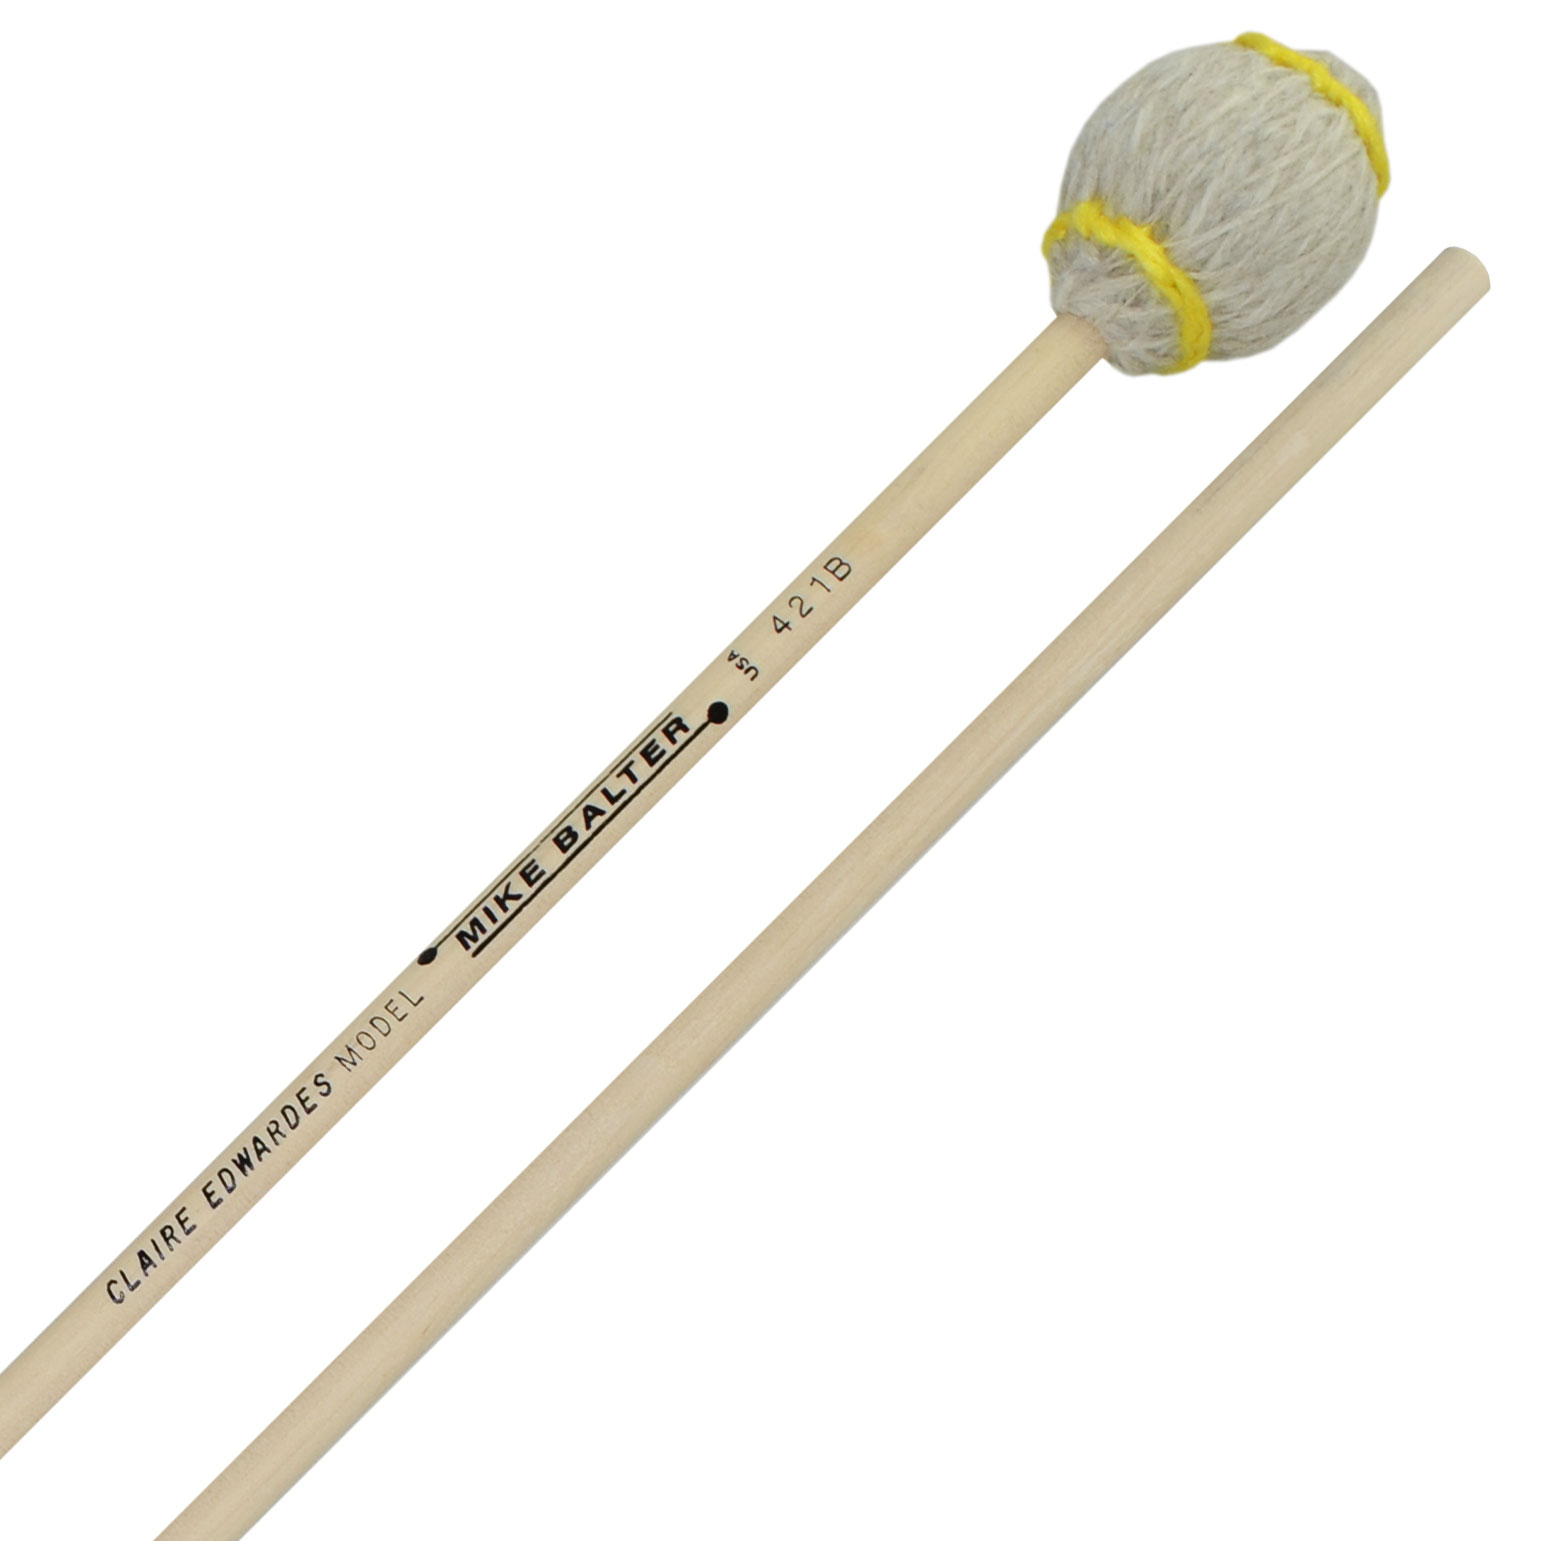 Mike Balter Claire Edwardes Signature Series Hard Marimba Mallets